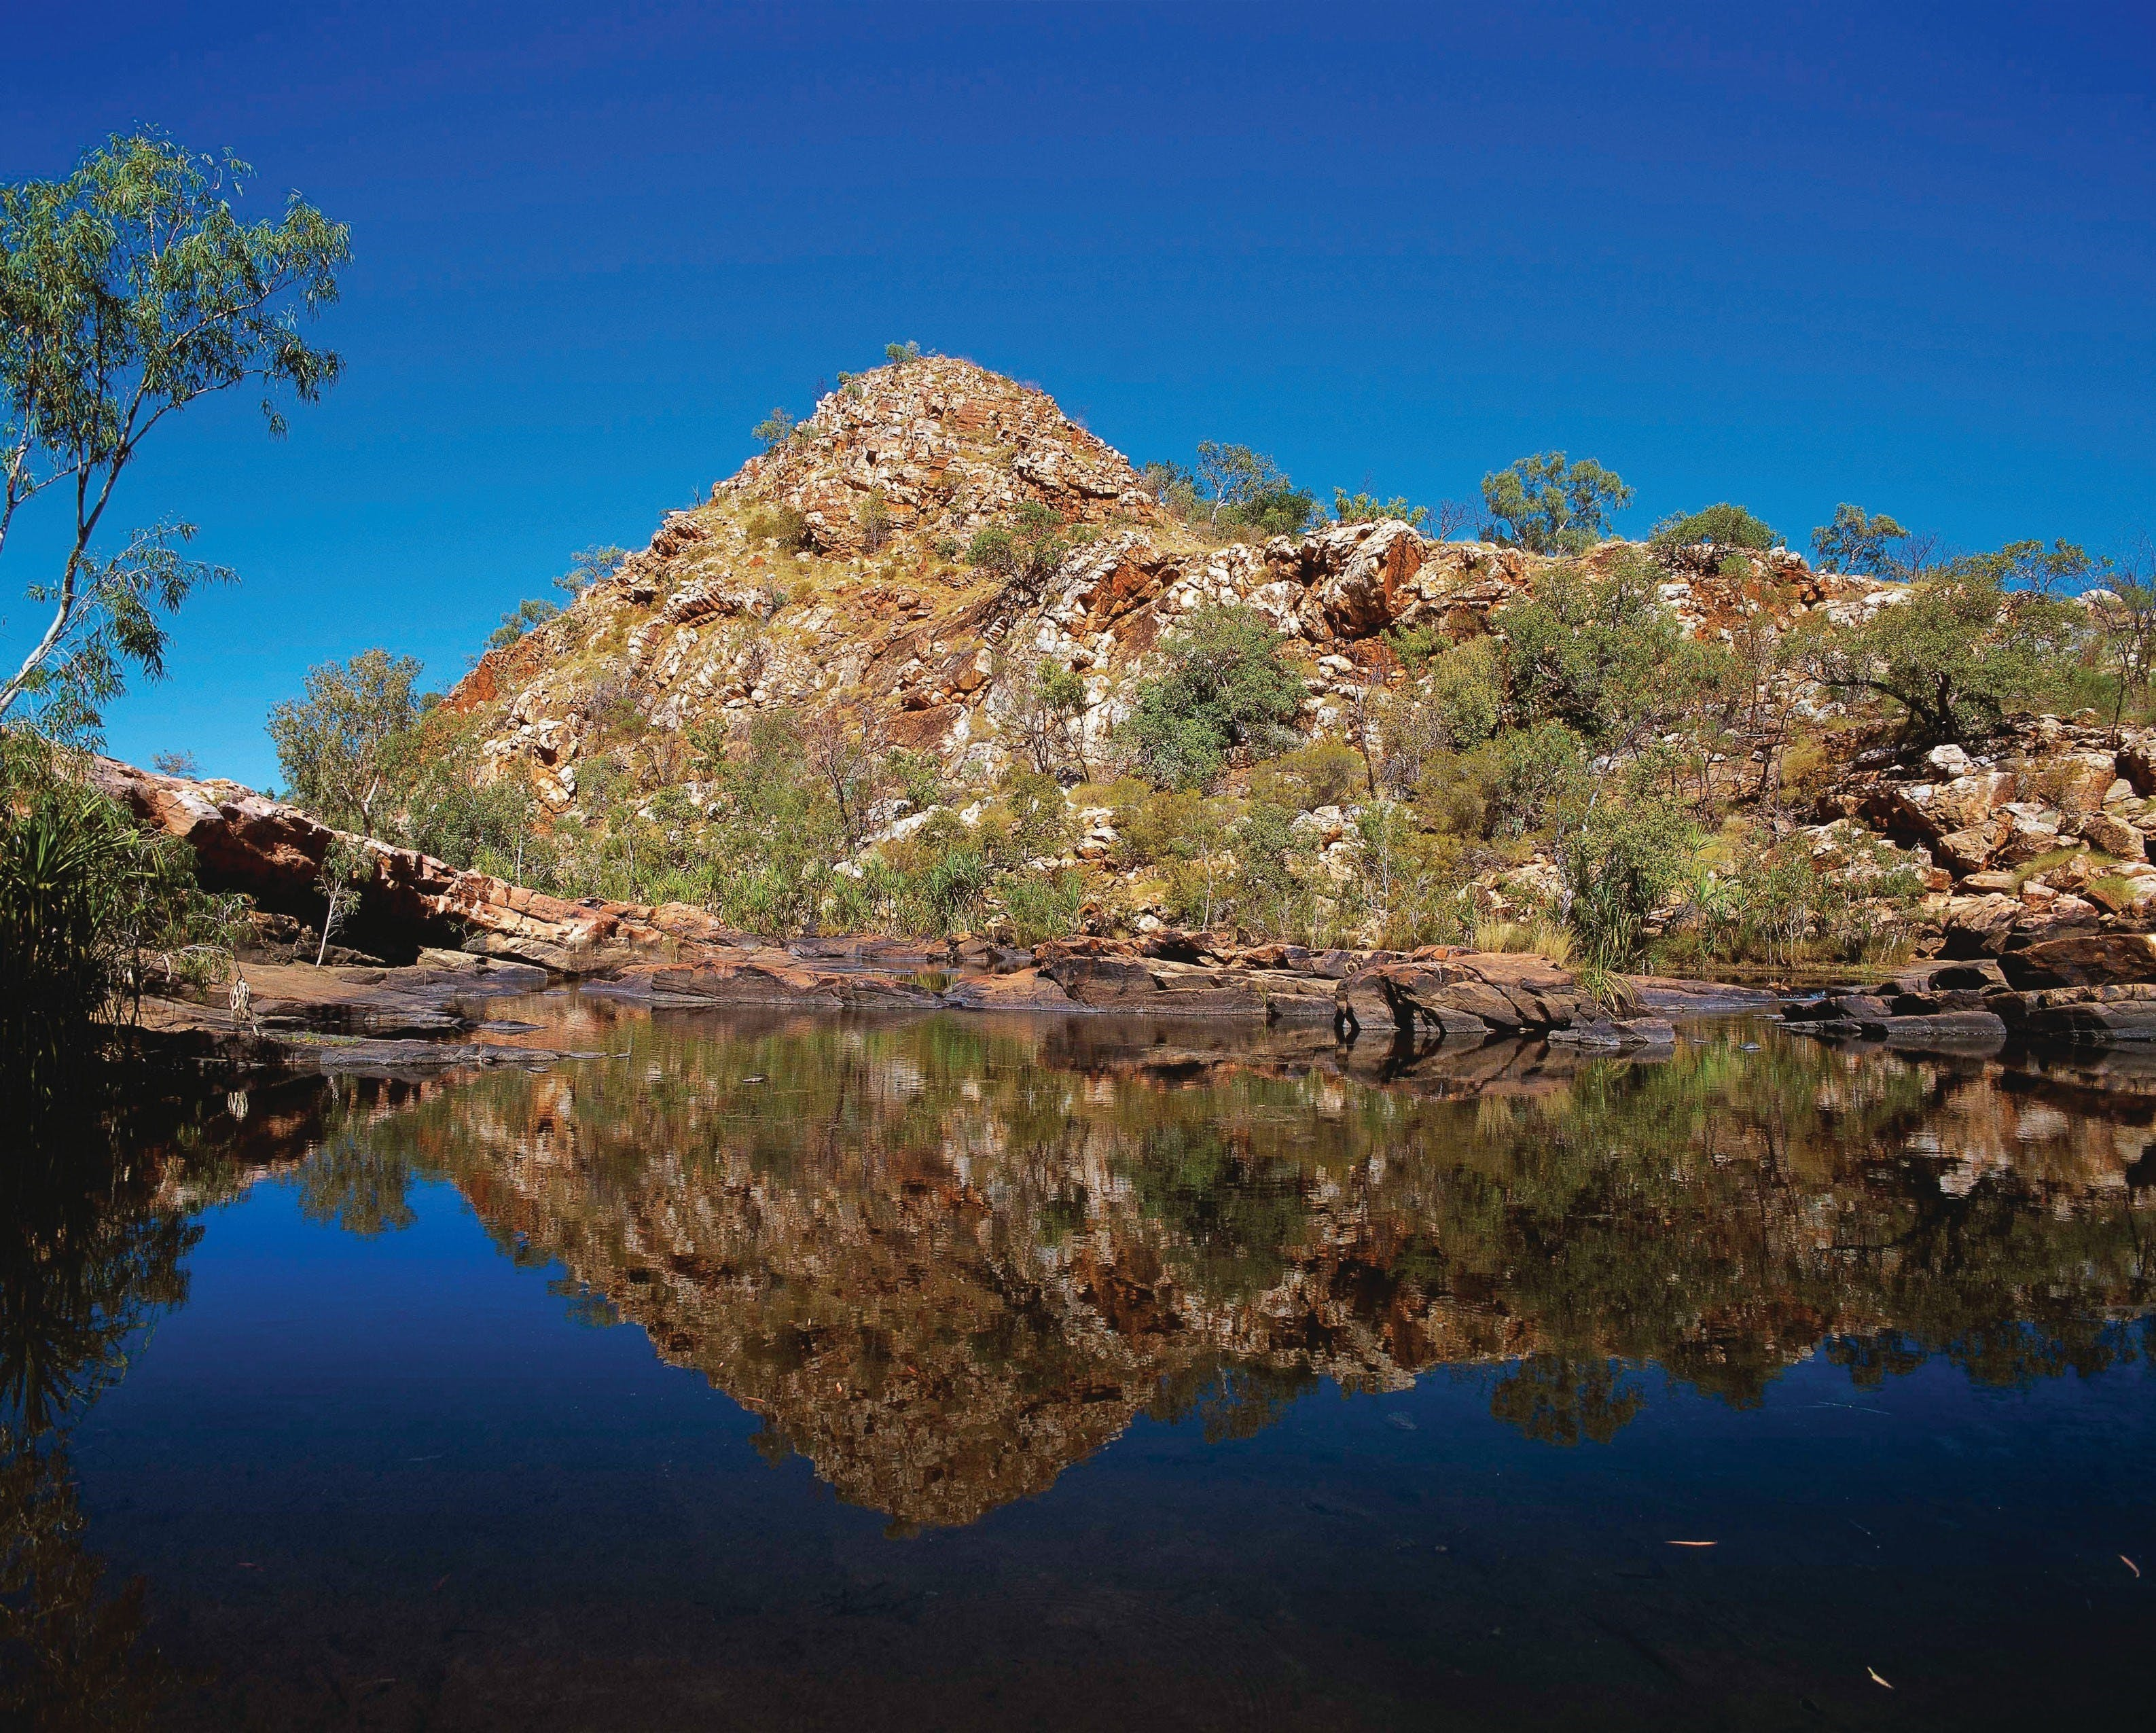 Silent Grove Camp at Wunaamin Miliwundi Ranges Conservation Park - Accommodation Port Hedland